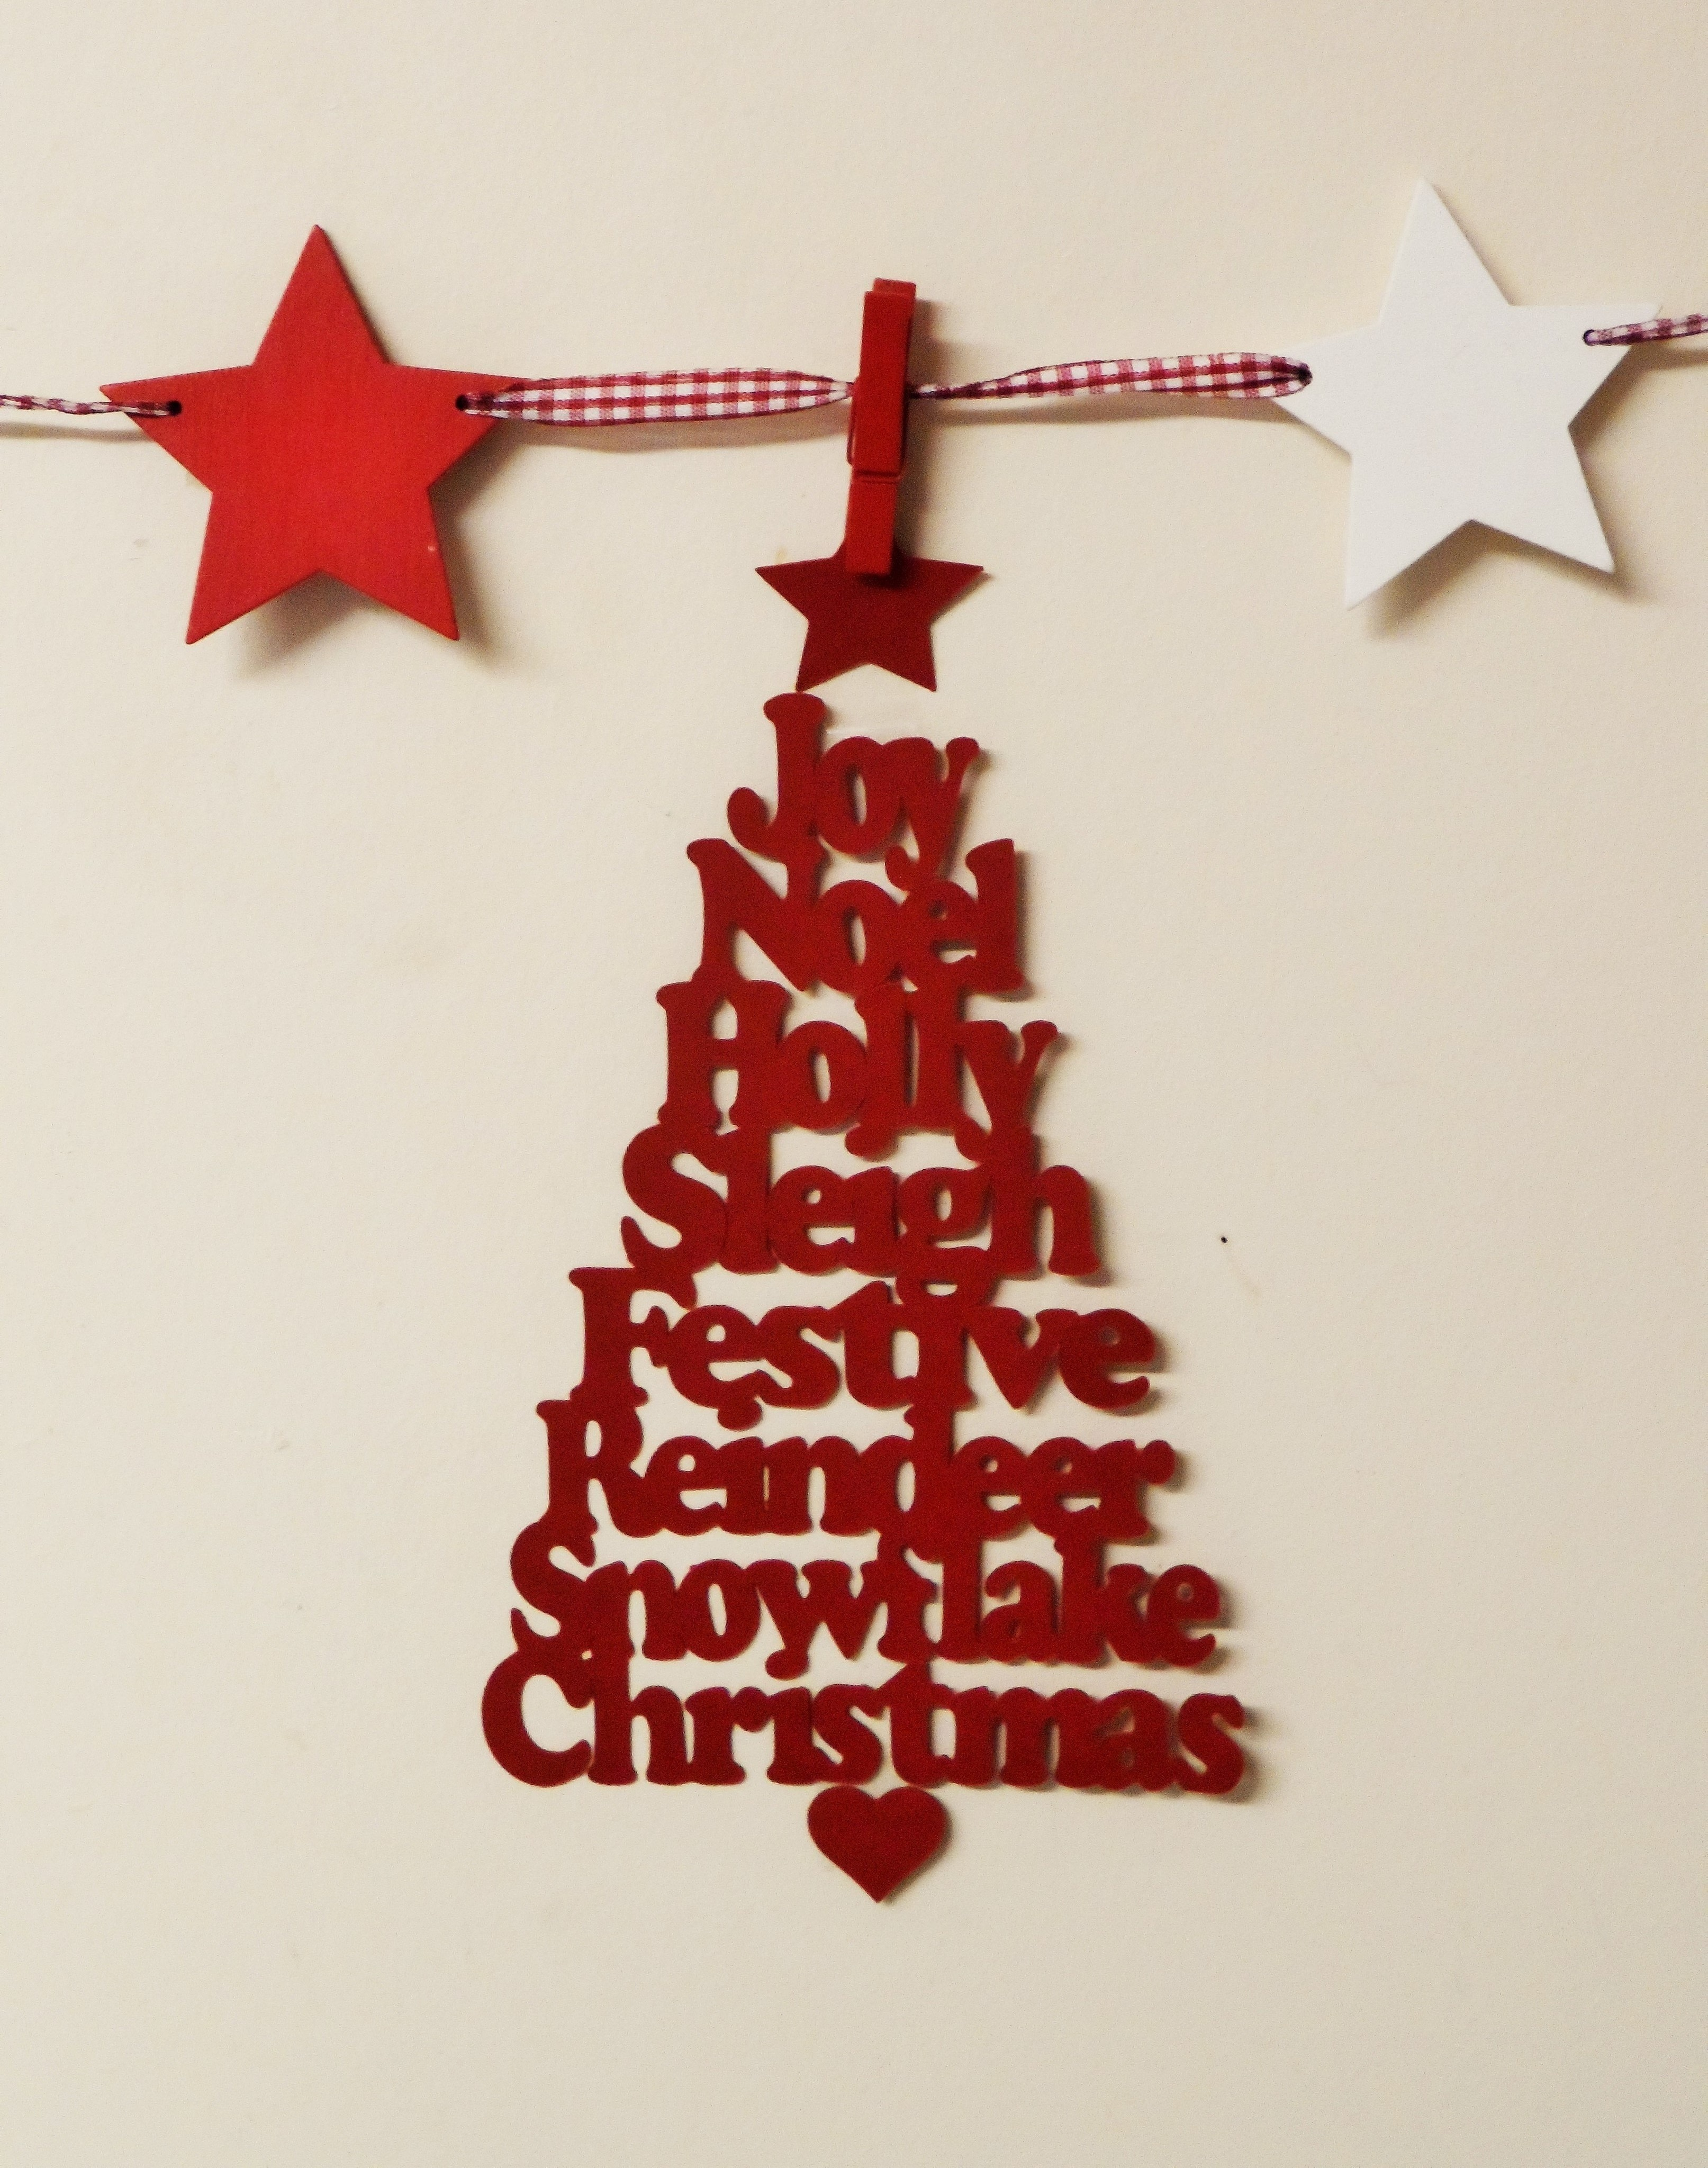 Christmas Tree Cut Out.Christmas Tree Words Paper Cut How To Make A Christmas